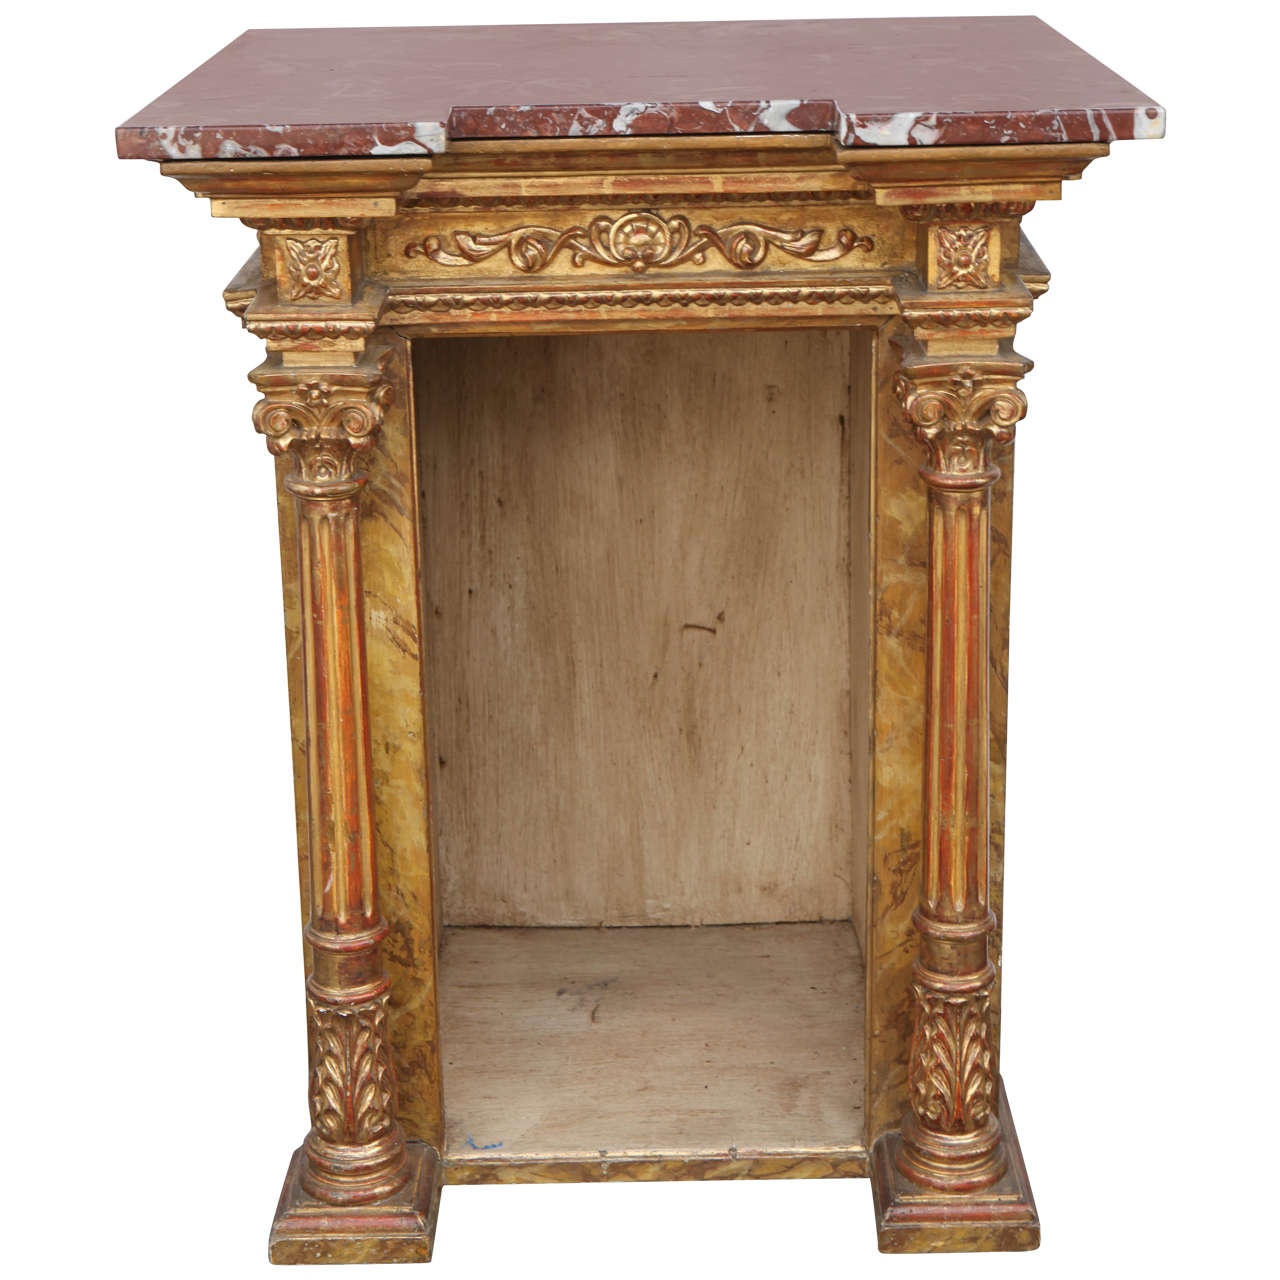 19th Century Italian Giltwood Display Table with Marble Top